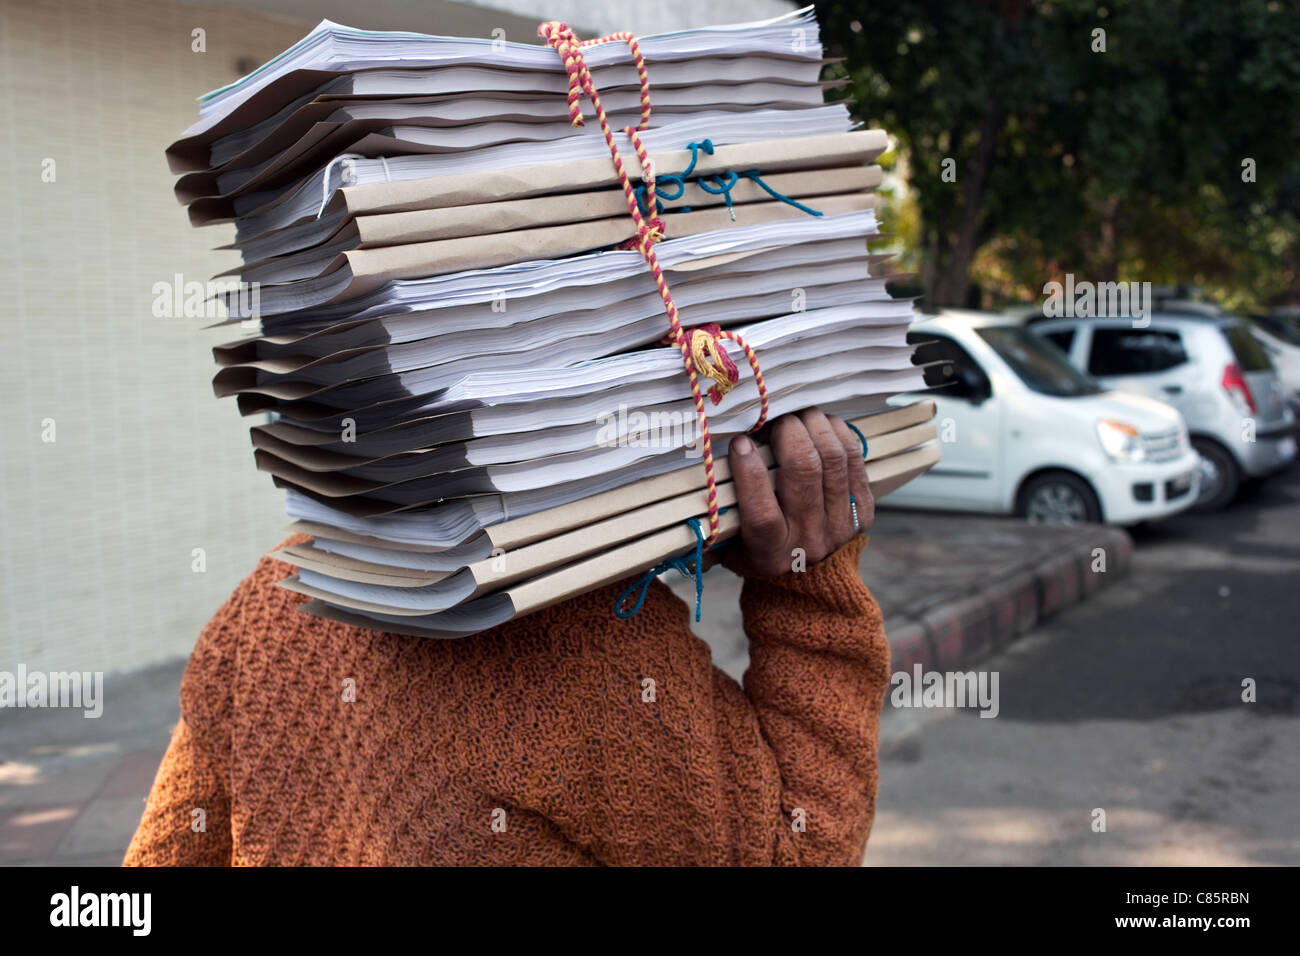 A man carries a pile of documents outside one of the courts in New Delhi, India. - Stock Image